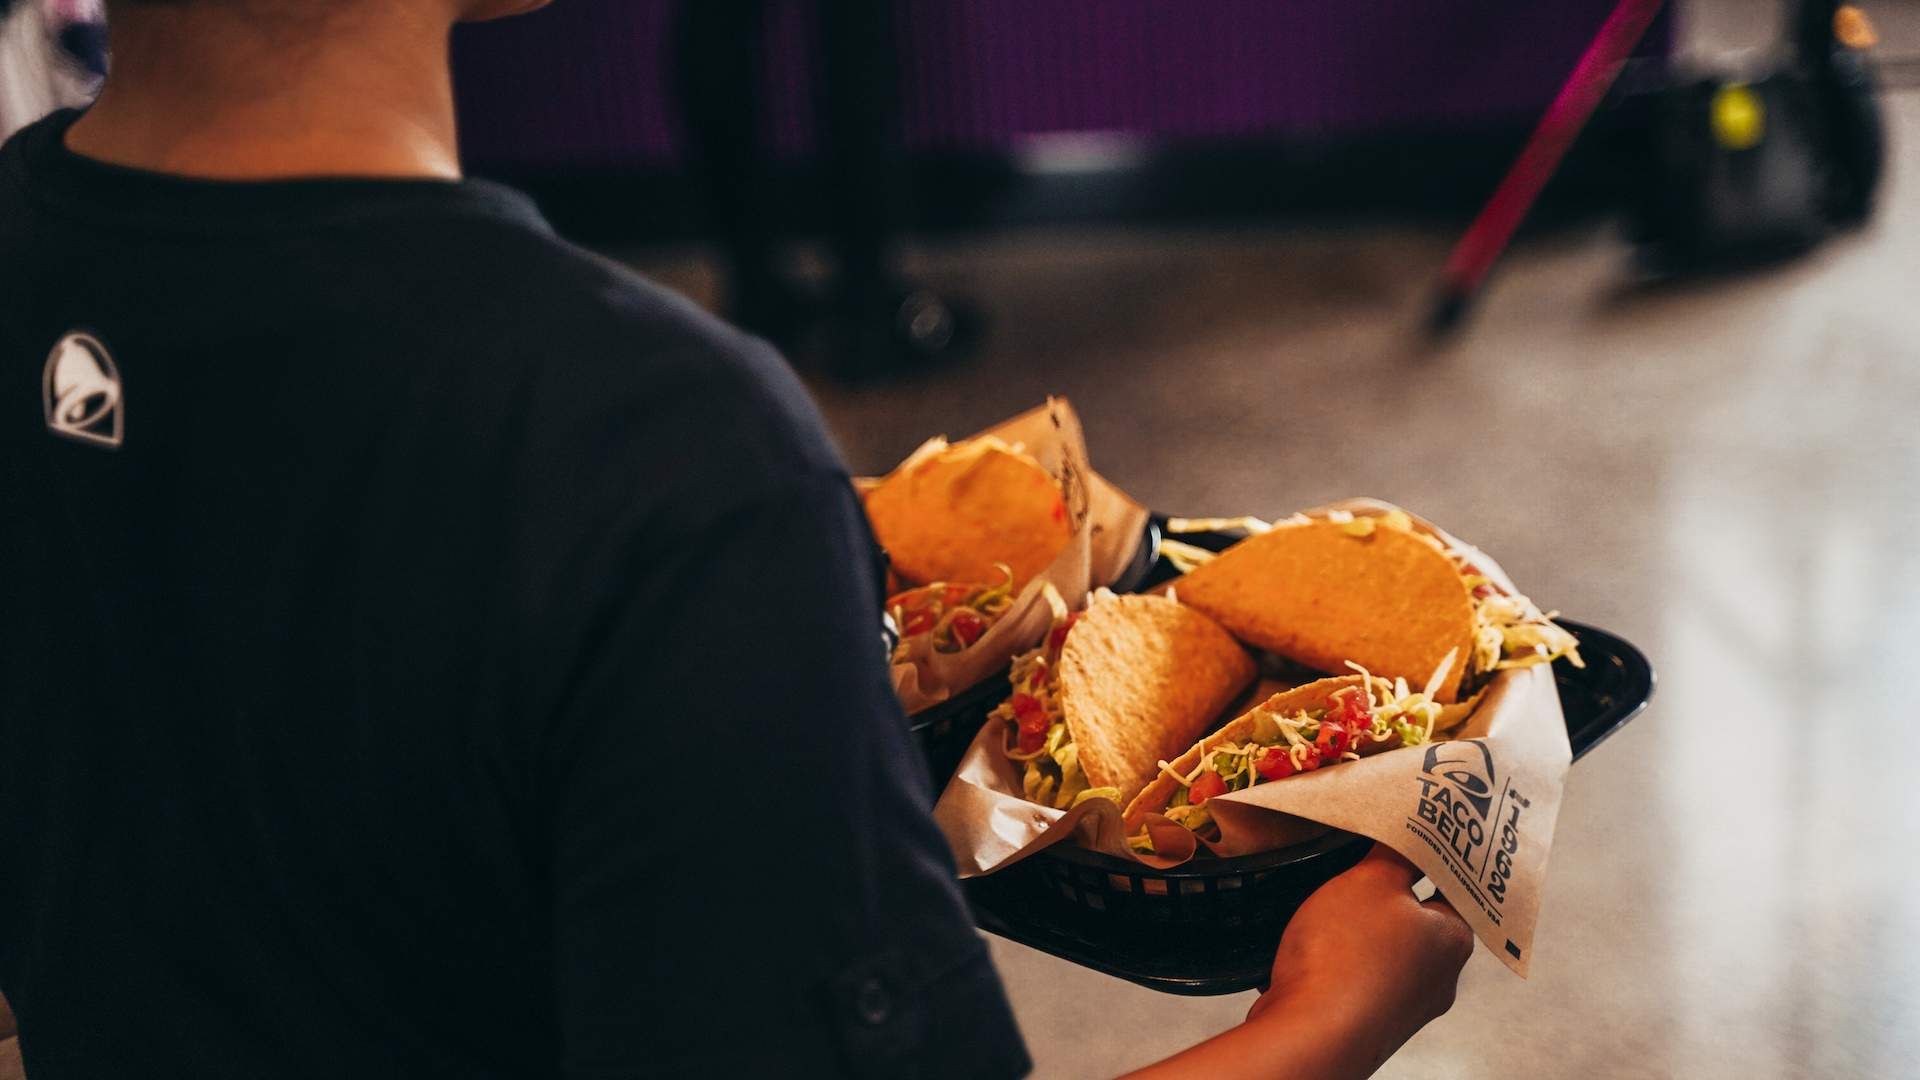 Taco Bell Is Handing Out Free Crunchy Tacos at Every NZ Store This Week